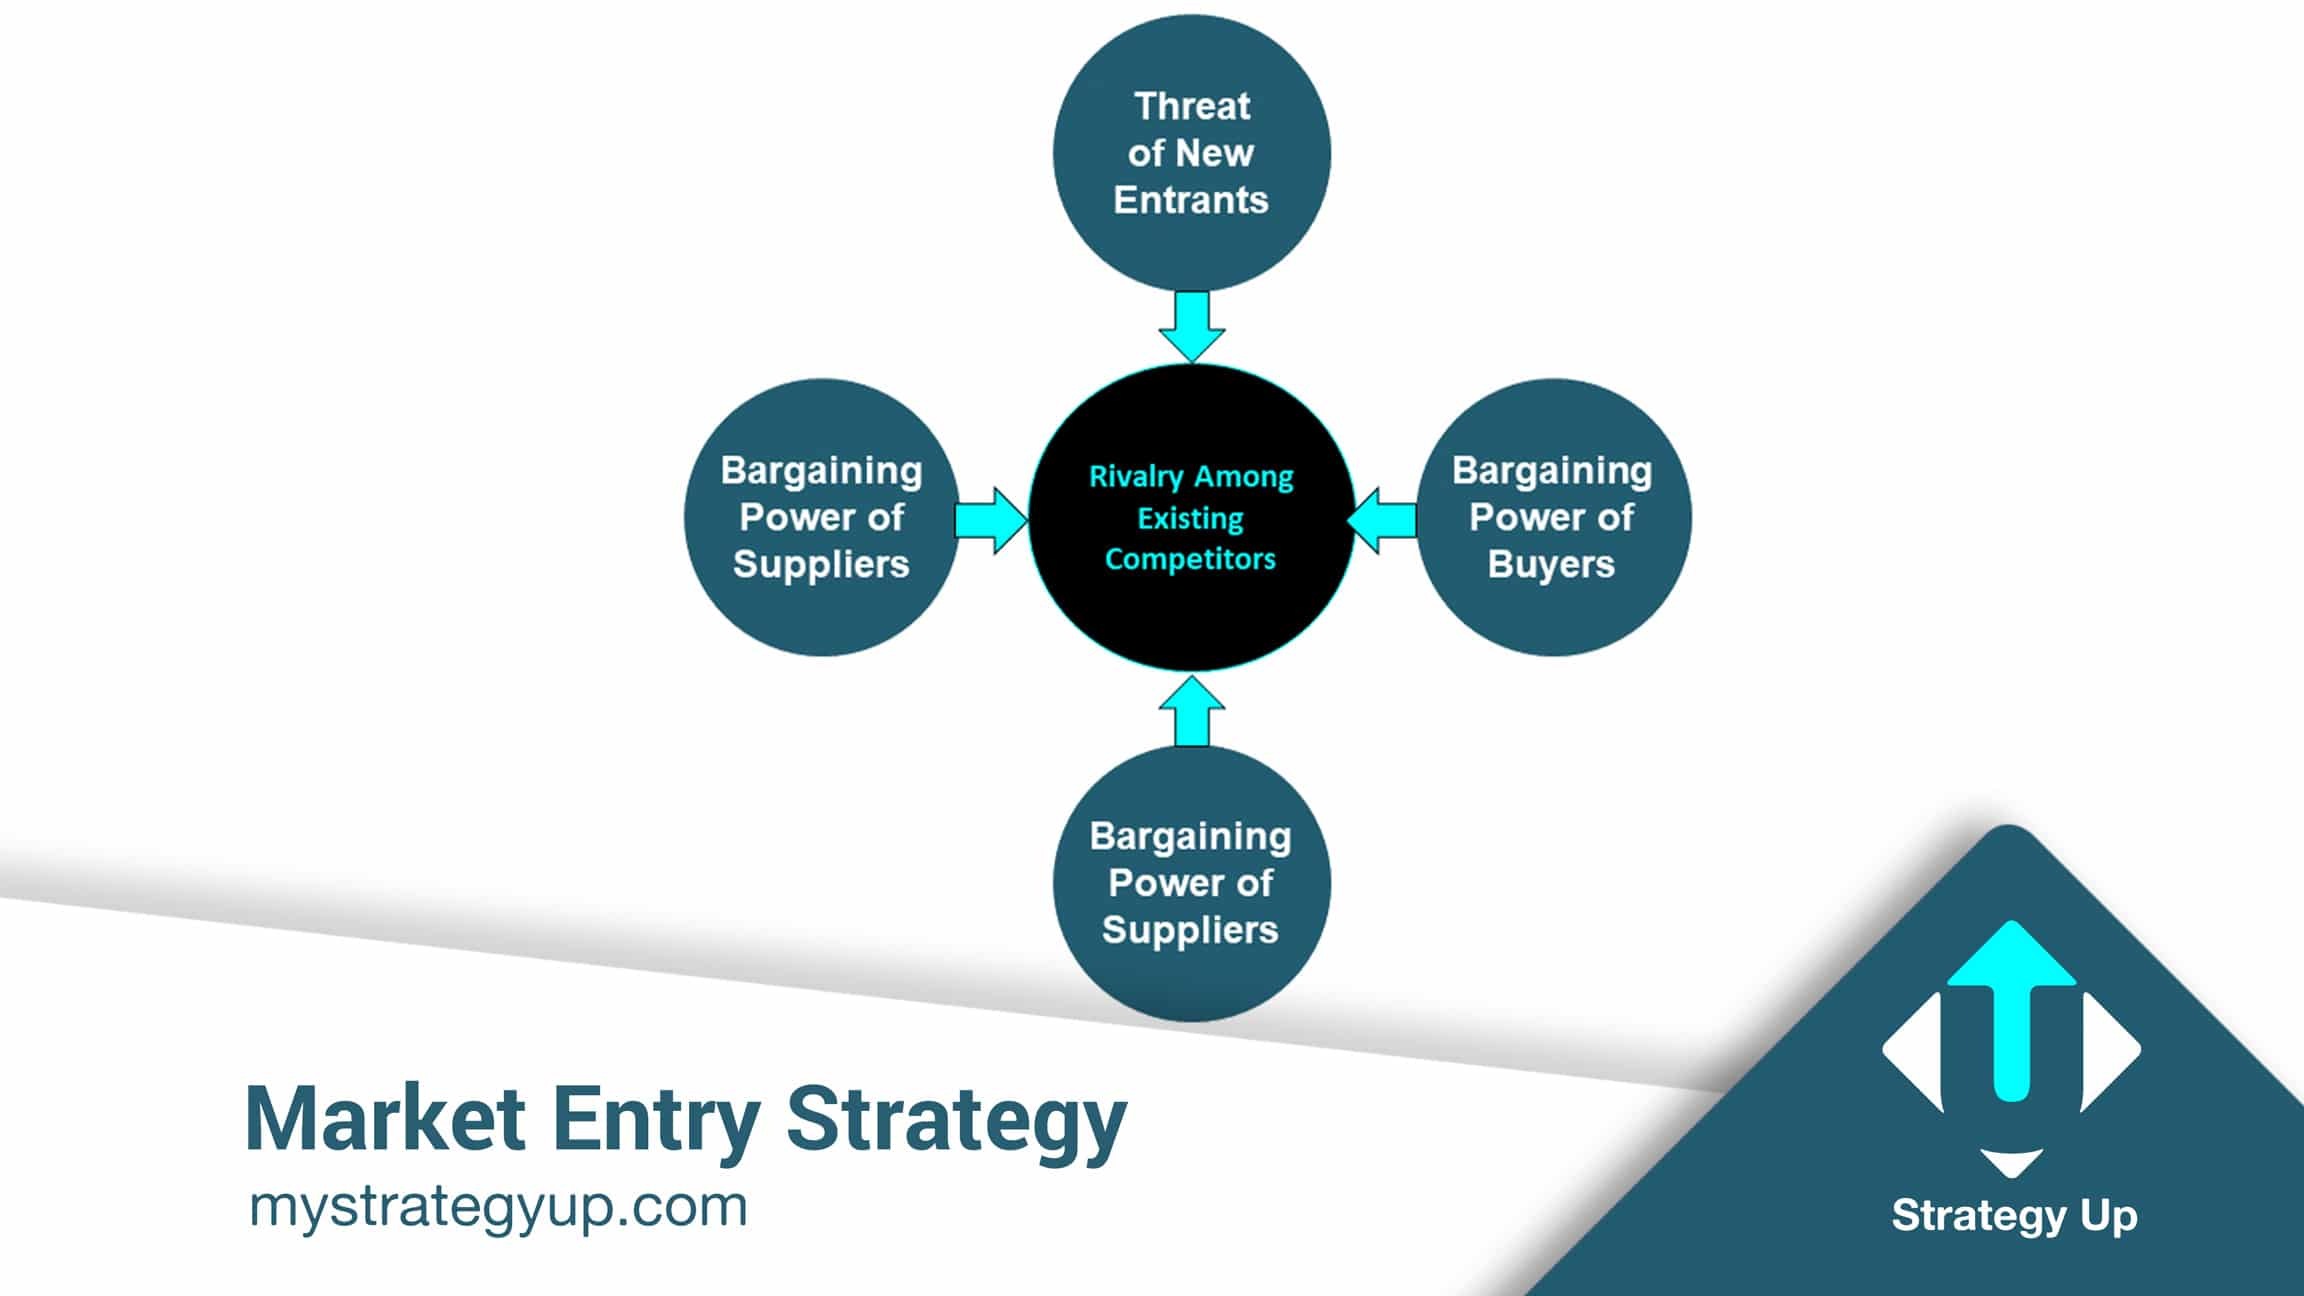 Market entry strategy - porter's 5 forces